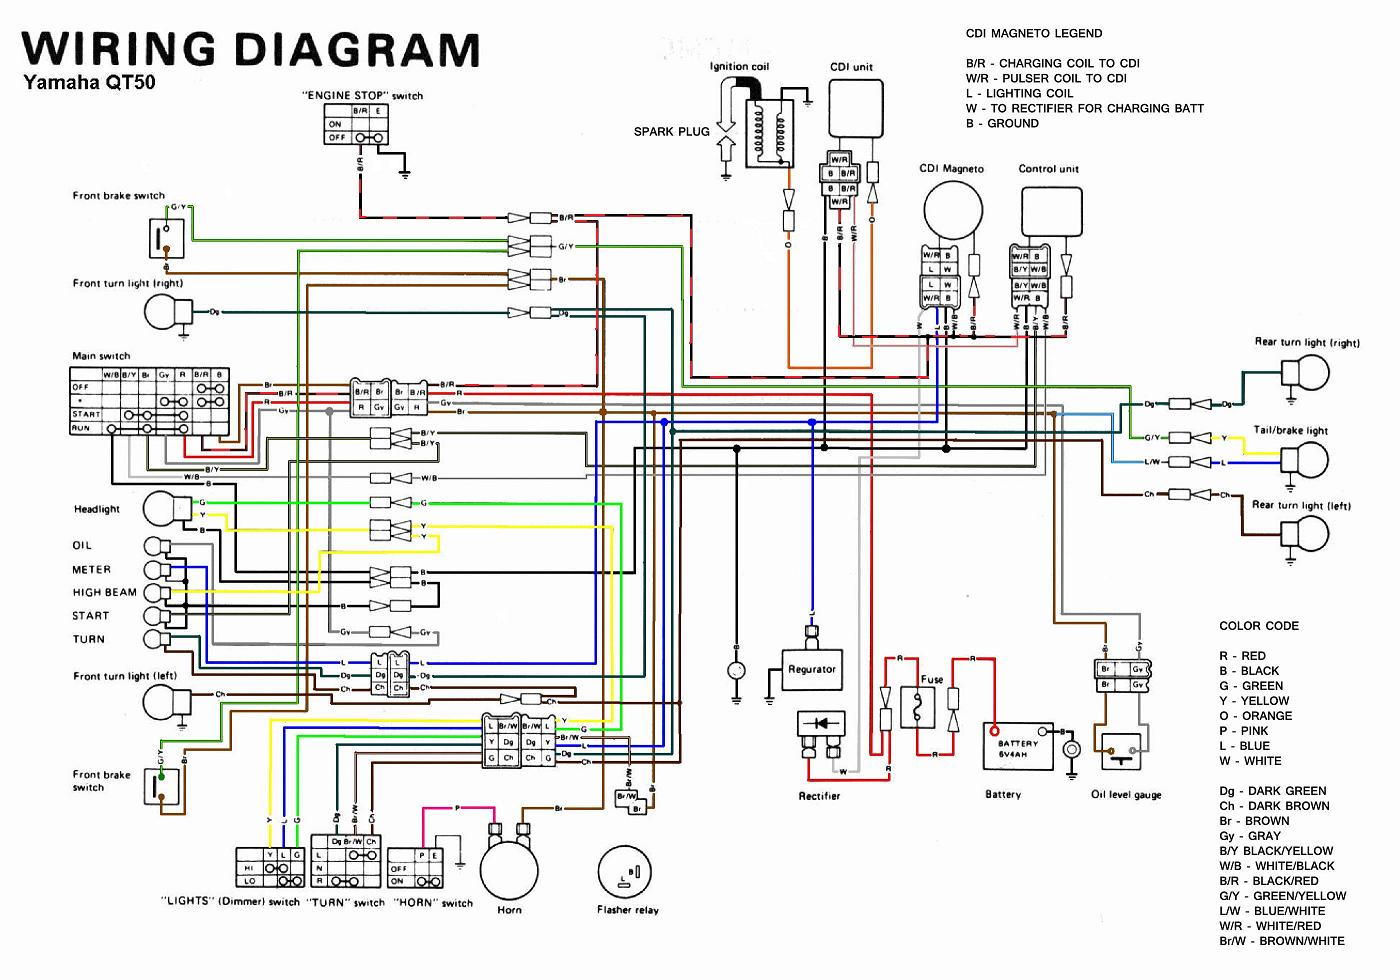 hight resolution of yamaha qt50 wiring diagram yamaha qt50 luvin and other nopeds 550 yamaha wire diagram yamaha qt50